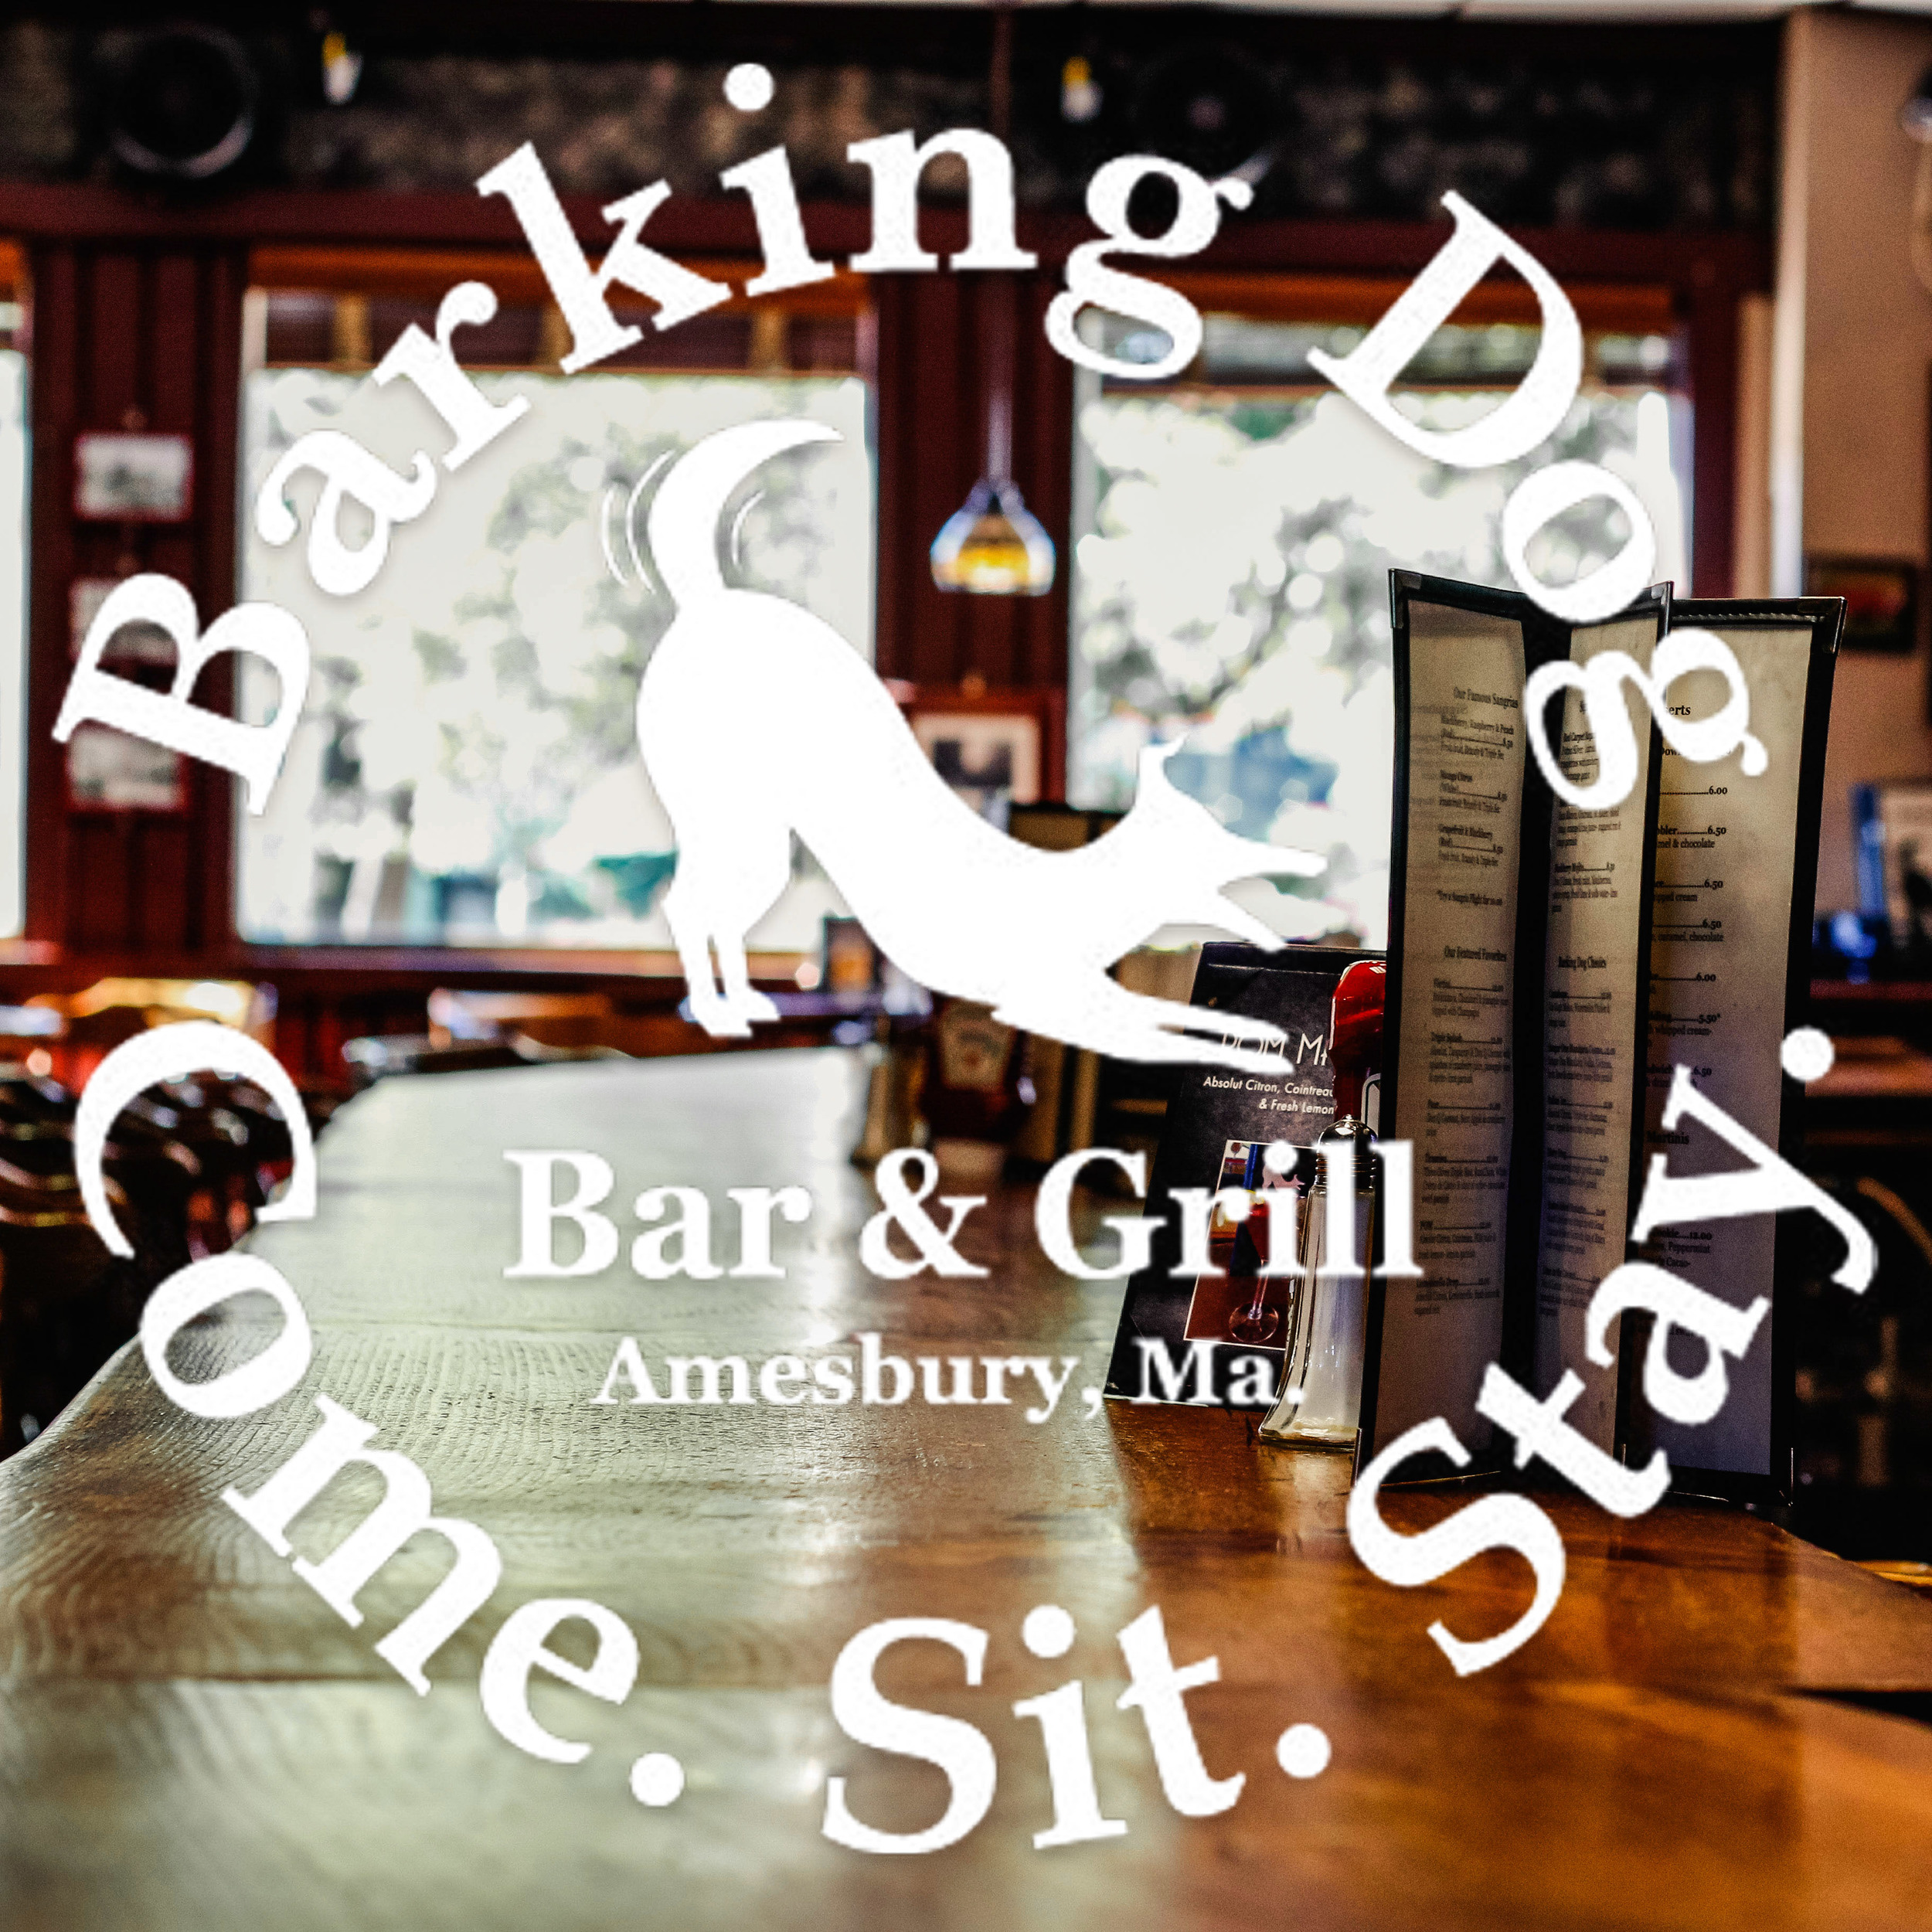 CHECK OUT A 3D TOUR AND PICTURES OF THE BARKING DOG